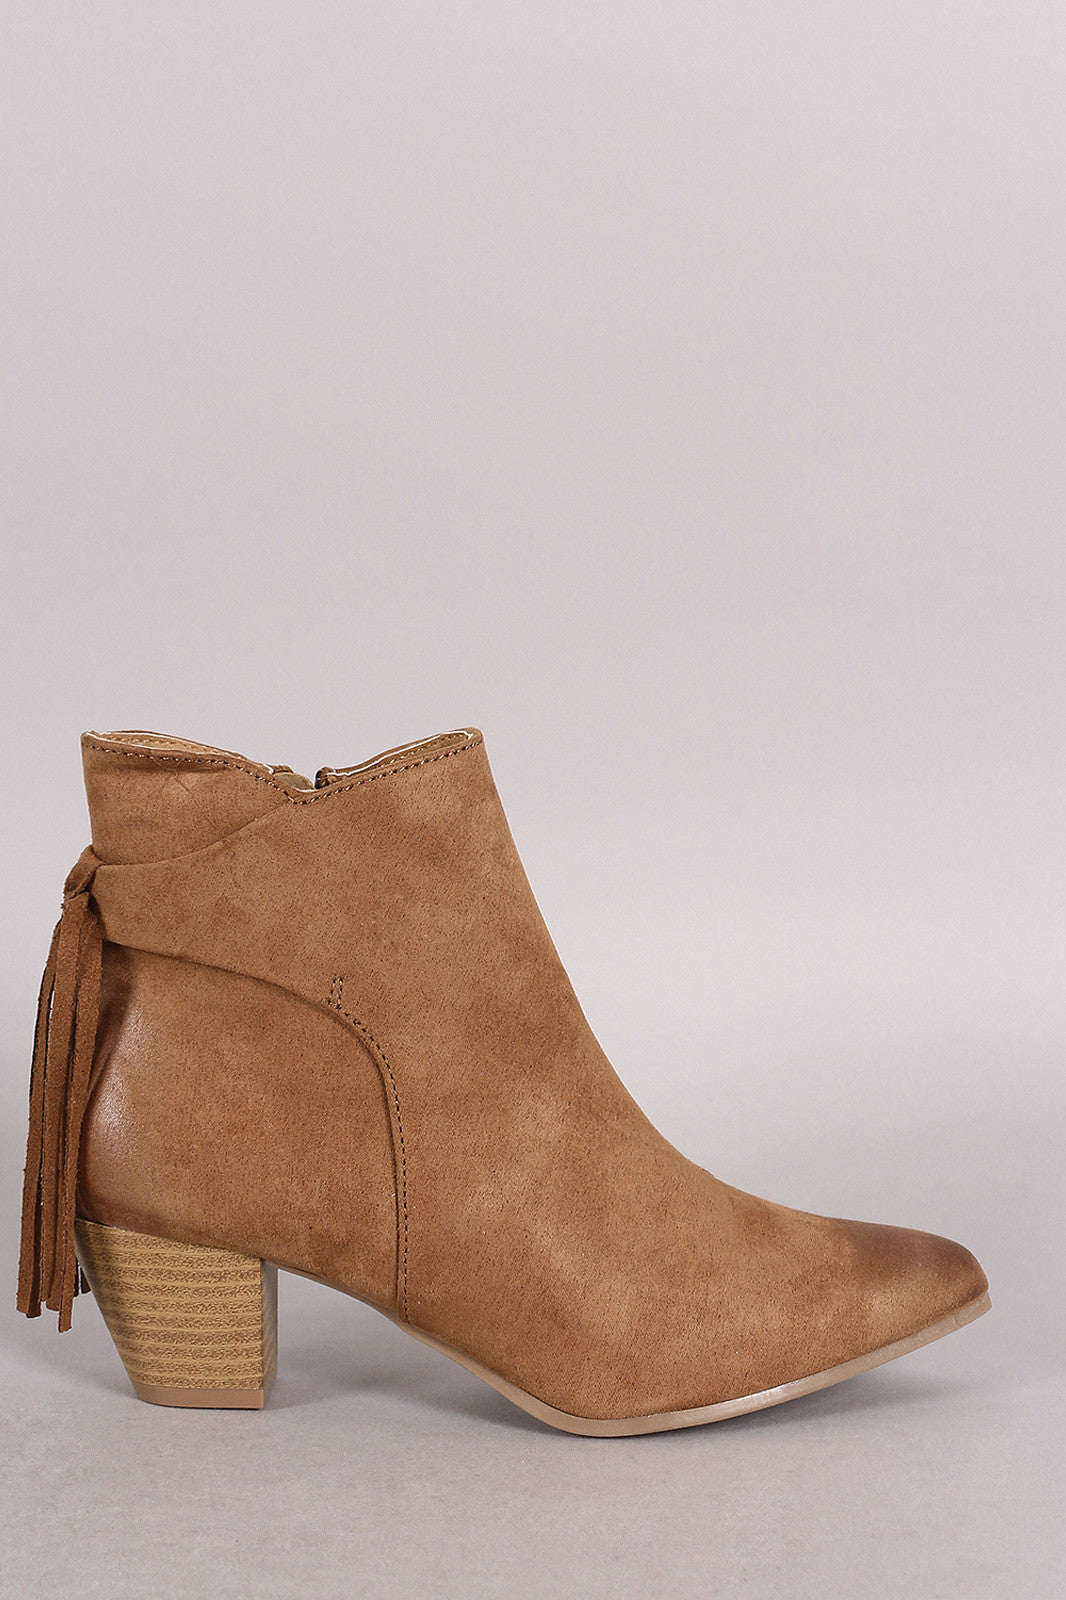 Qupid Suede Fringe Pointy Toe Chunky Heeled Booties - Thick 'N' Curvy Shop - 3